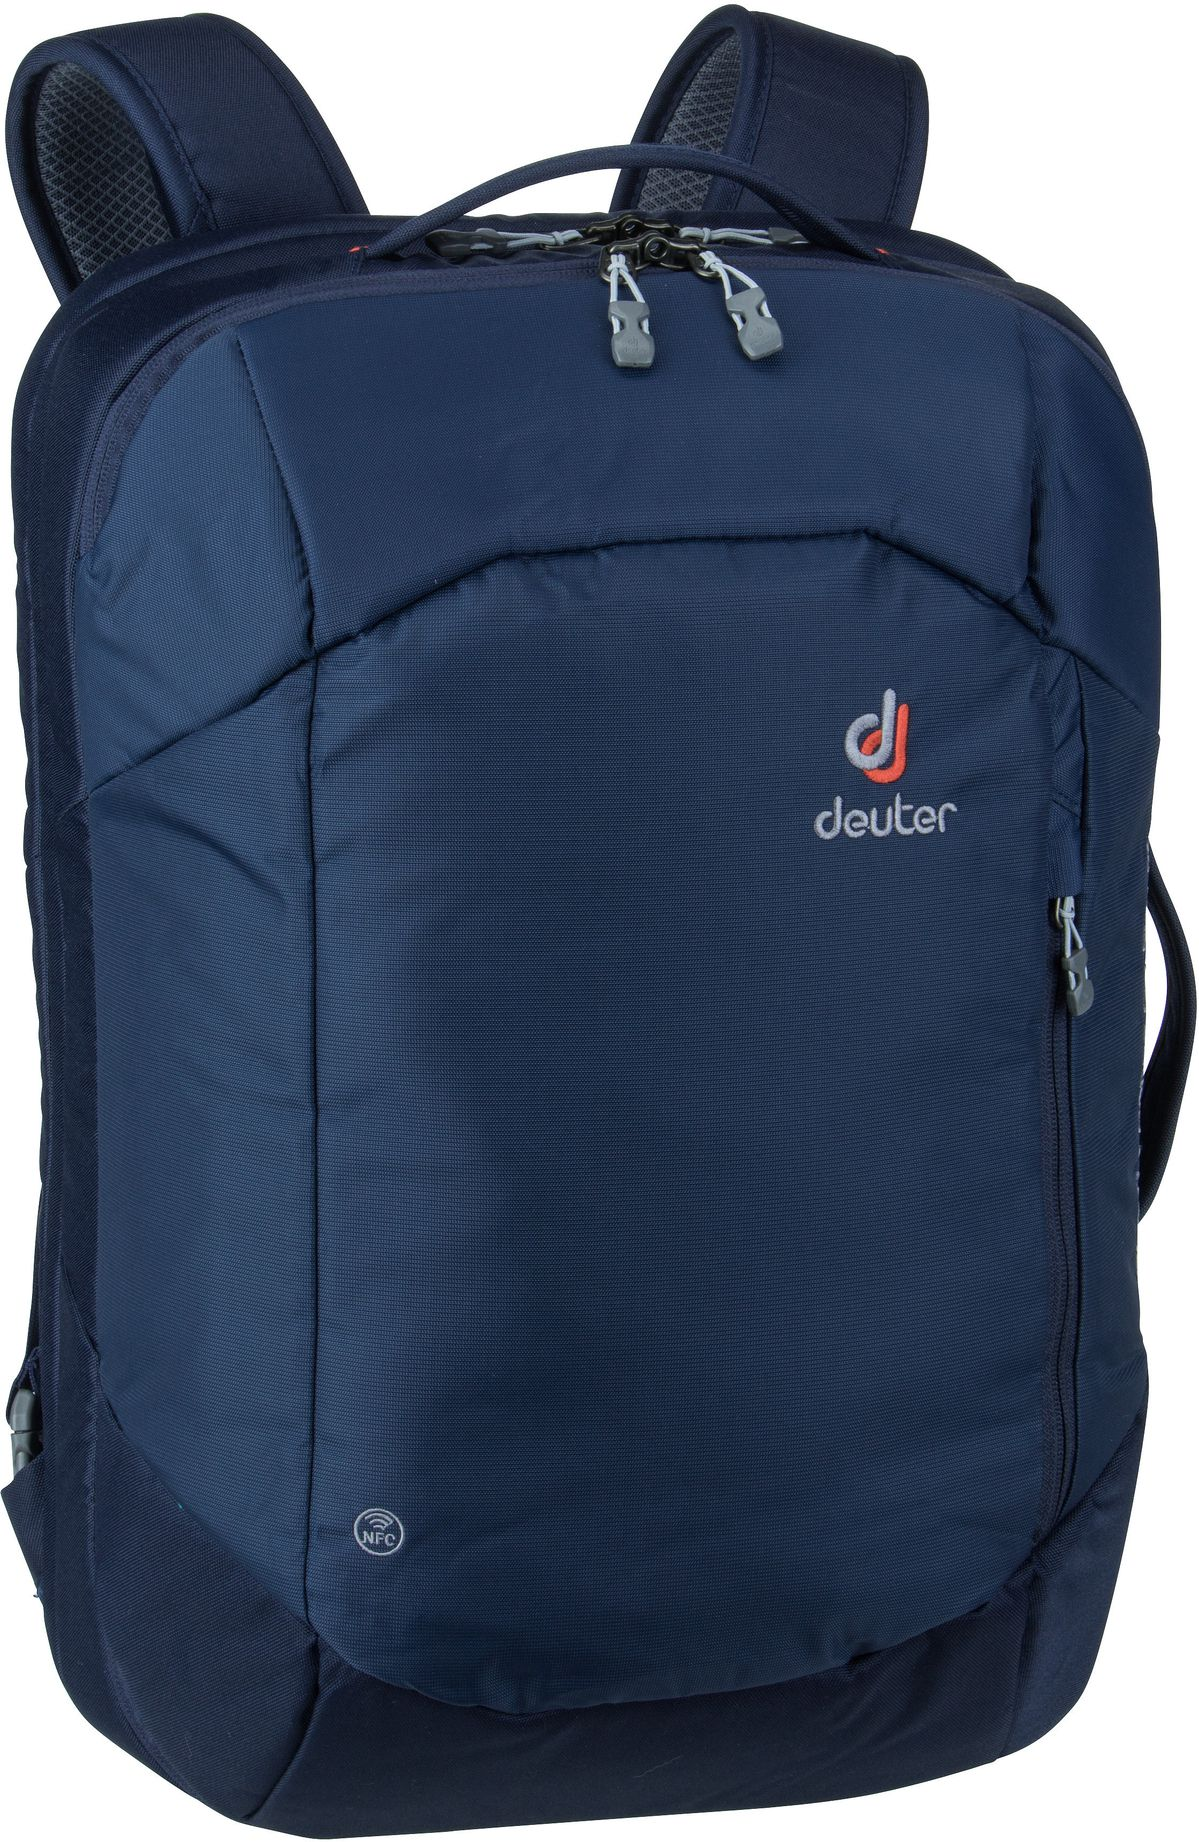 Laptoprucksack Aviant Carry On Pro 36 Midnight/Navy (36 Liter)